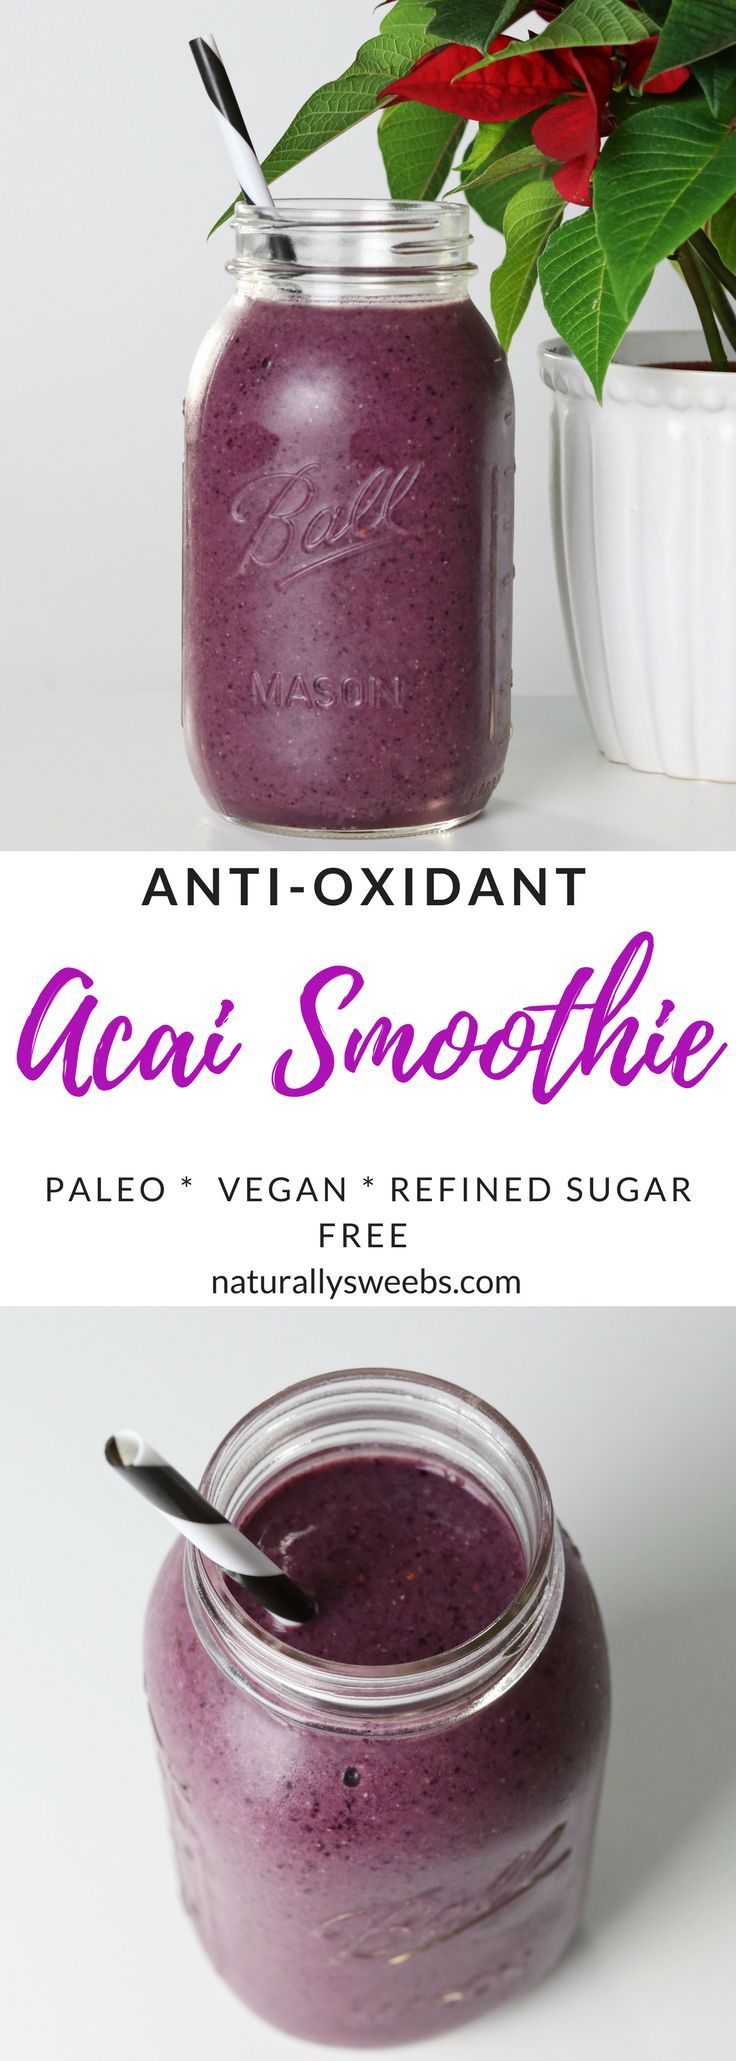 Fat blasting acai smoothie, made with very simple ingredients. Packed with protein and anti-oxidant properties. Great for any meal! #healthy #smoothie #acai #fatloss